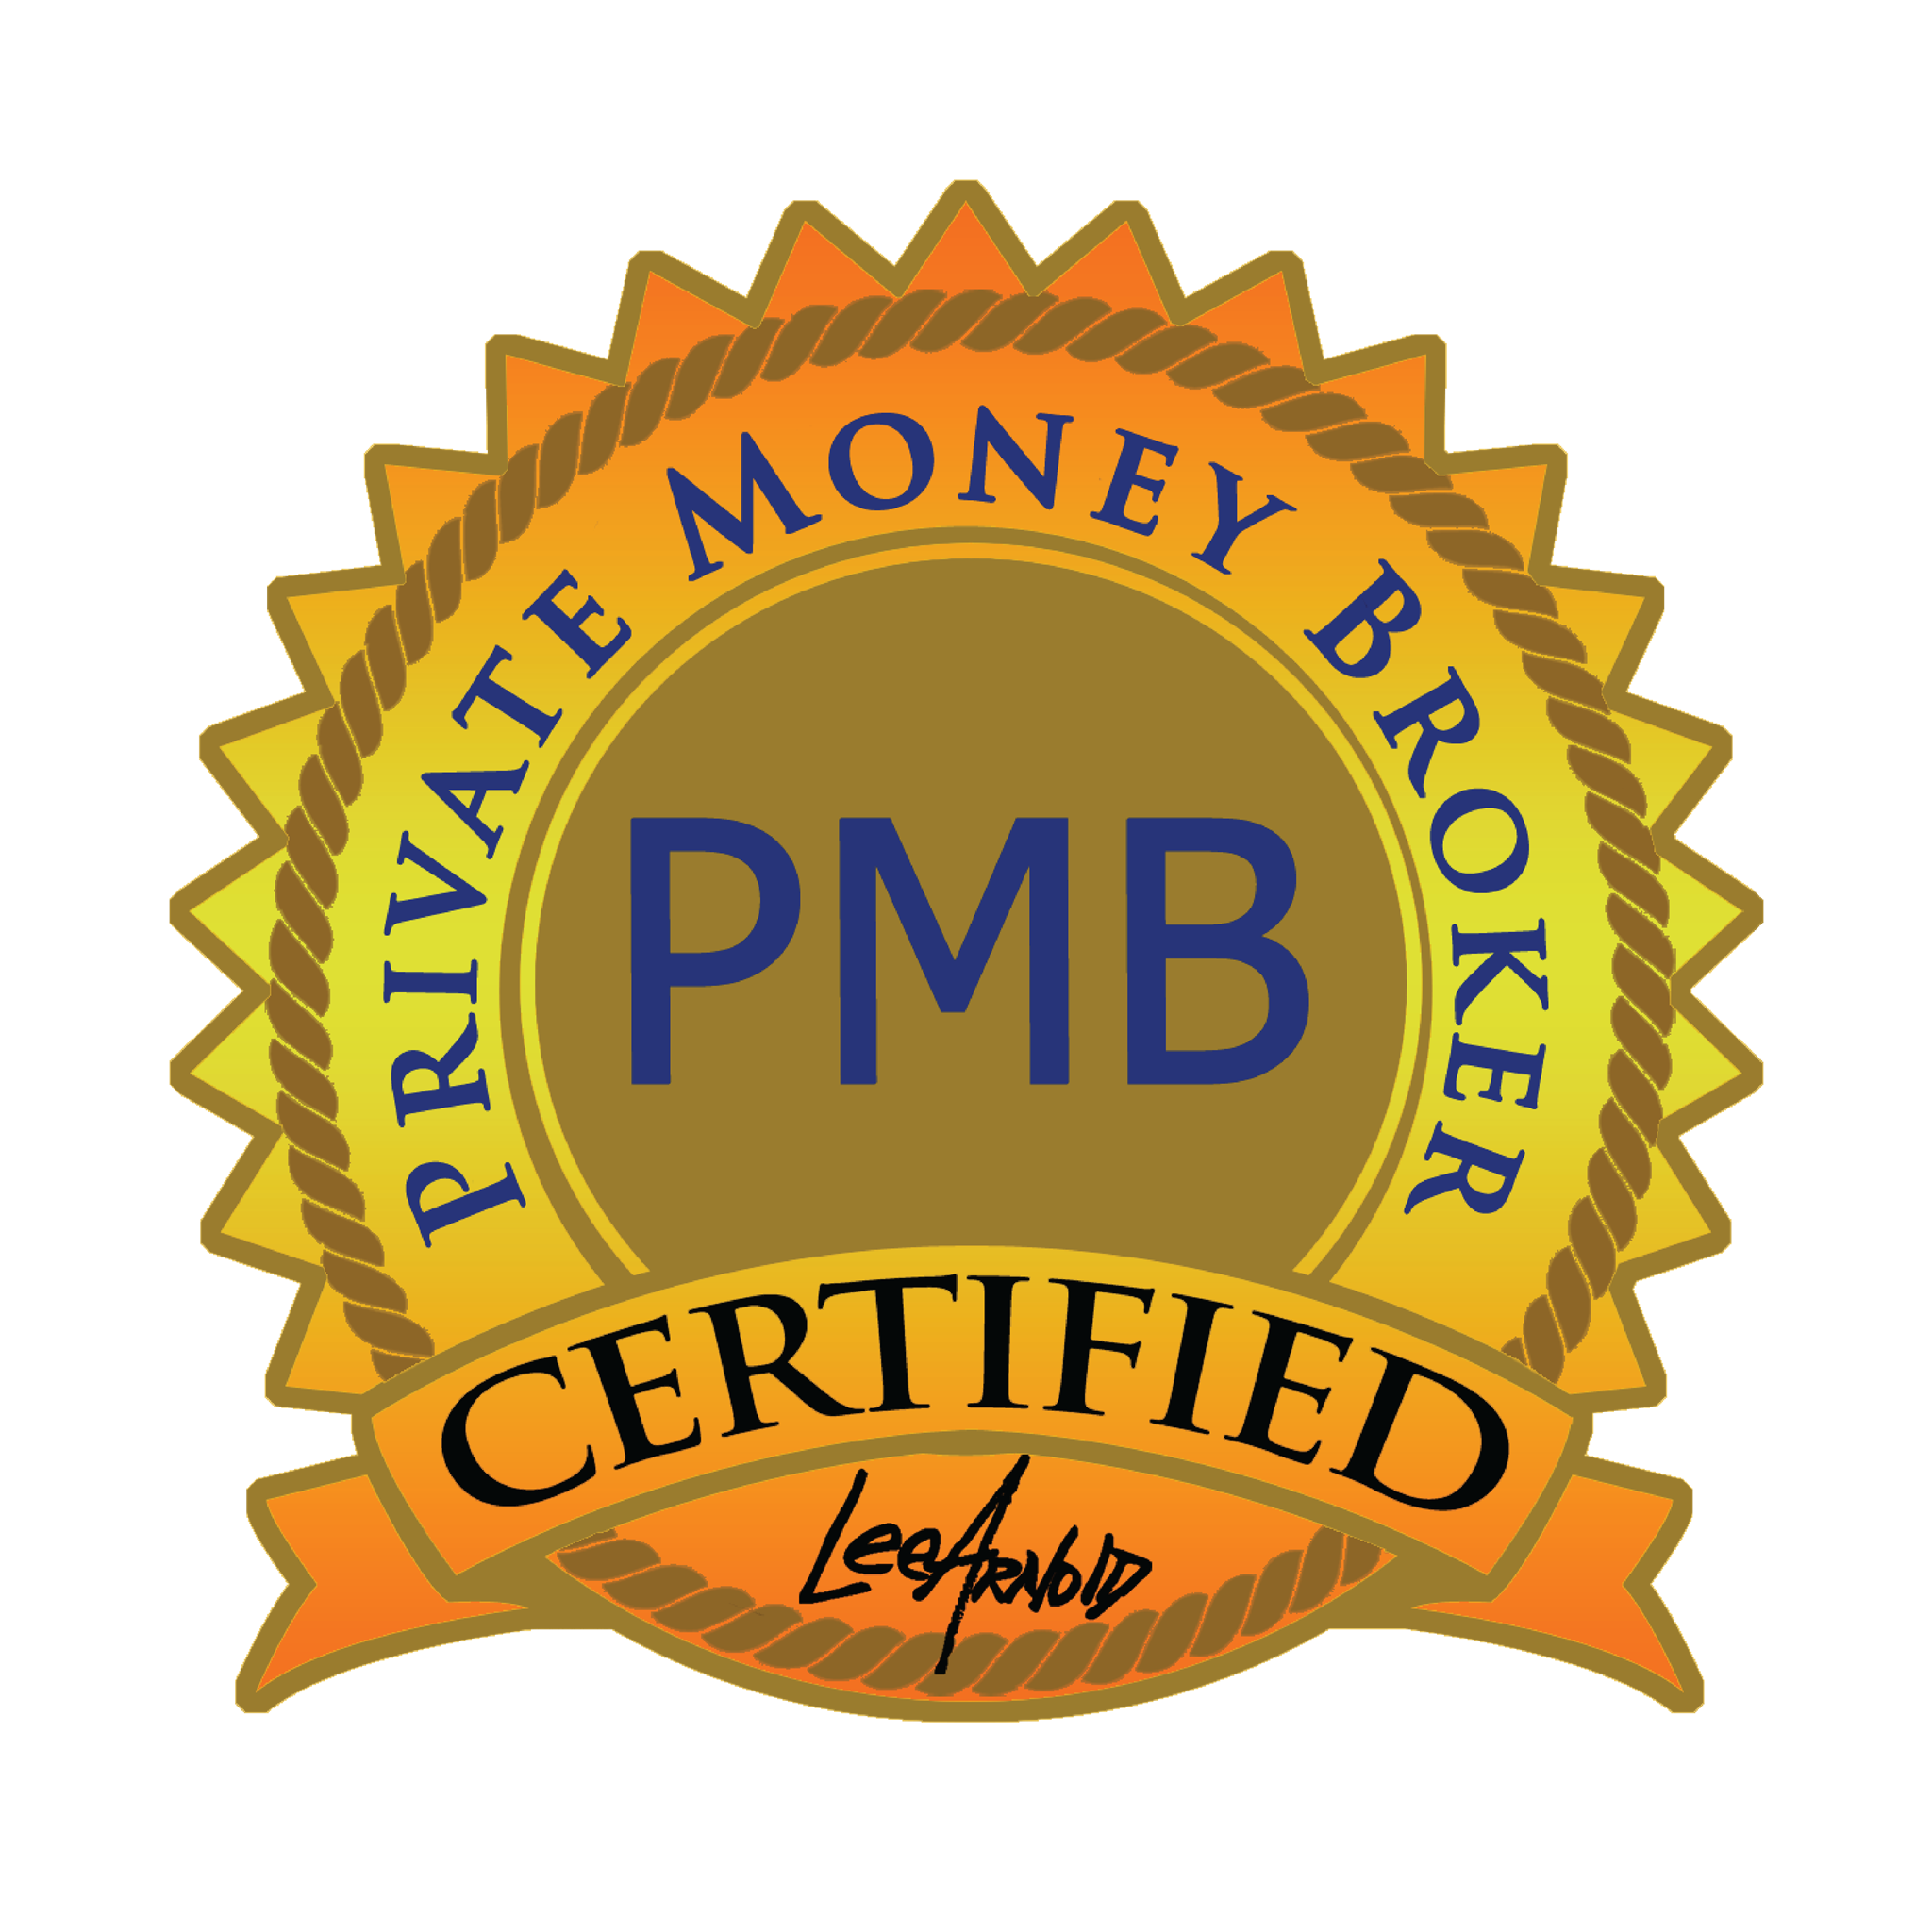 The Lee Arnold System Private Money Broker Certification